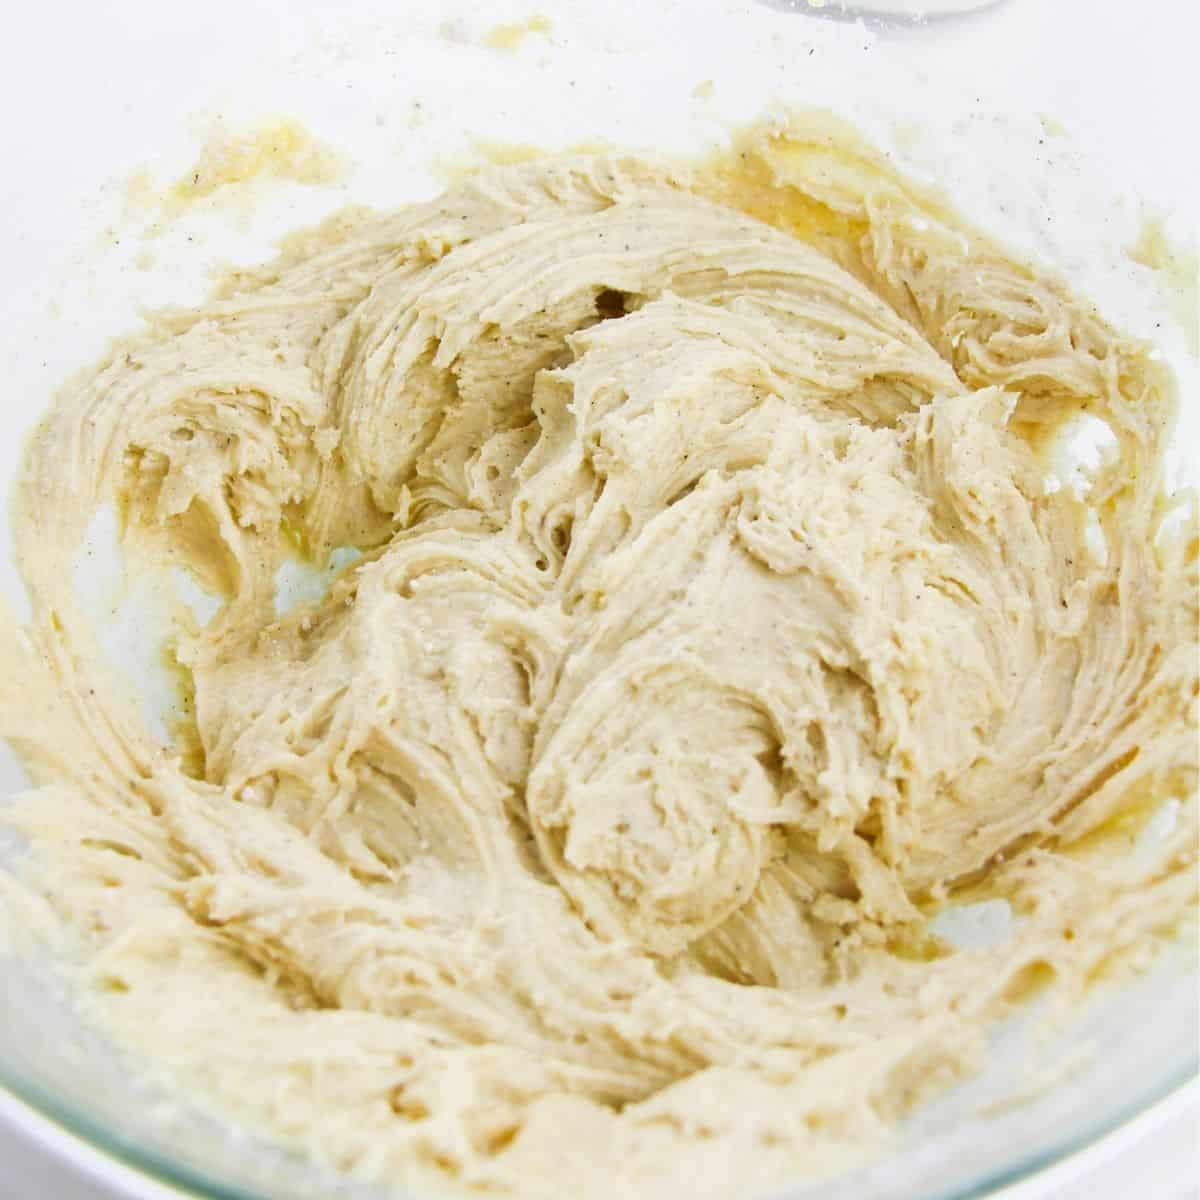 Vanilla cake mix that has been whipped in a glass bowl.